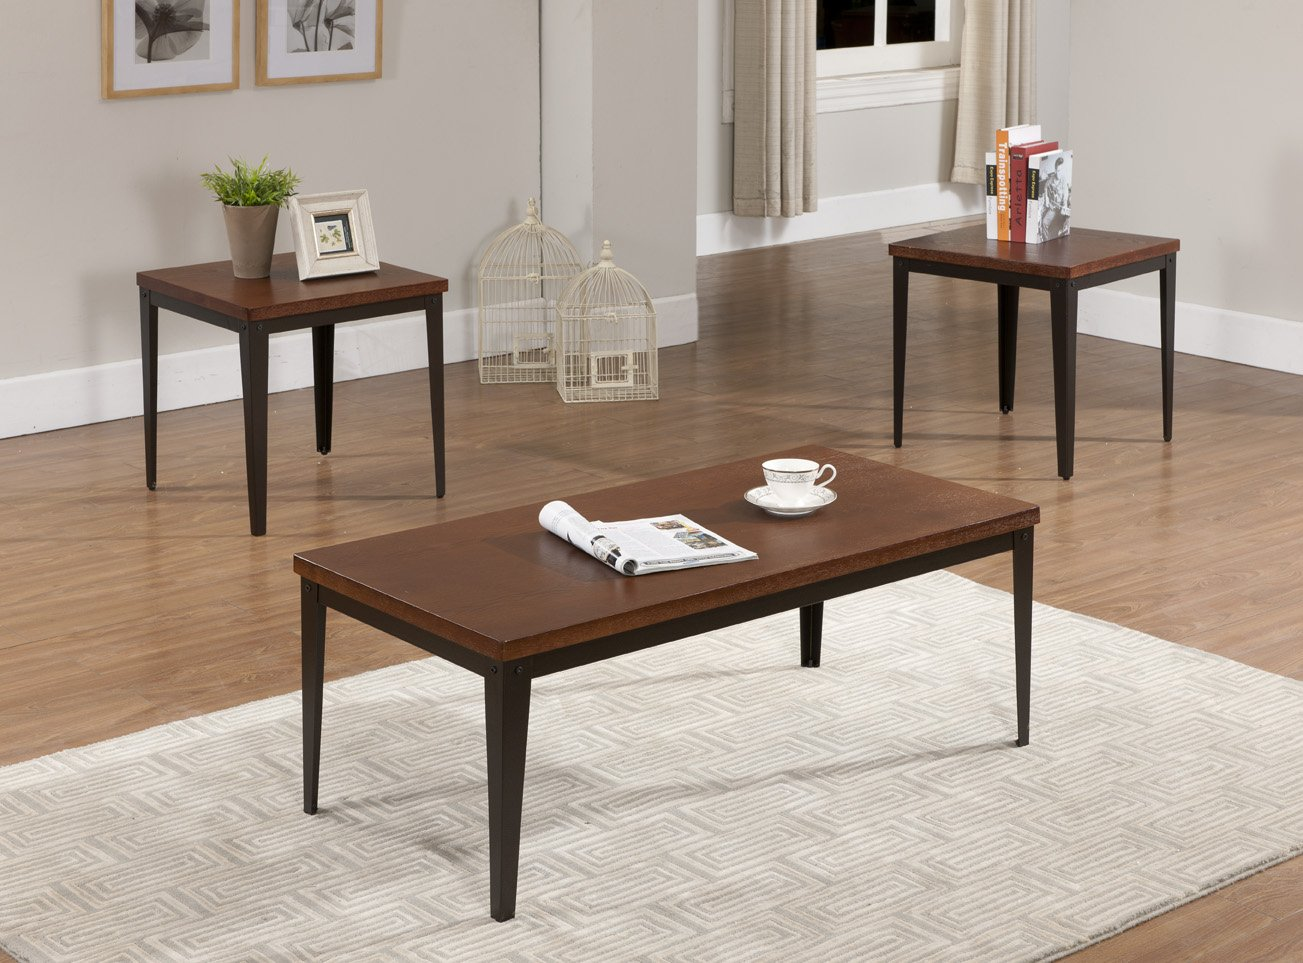 3 pc metal frame with cherry finish wood top coffee table 2 end tables new ebay Cherry wood coffee tables